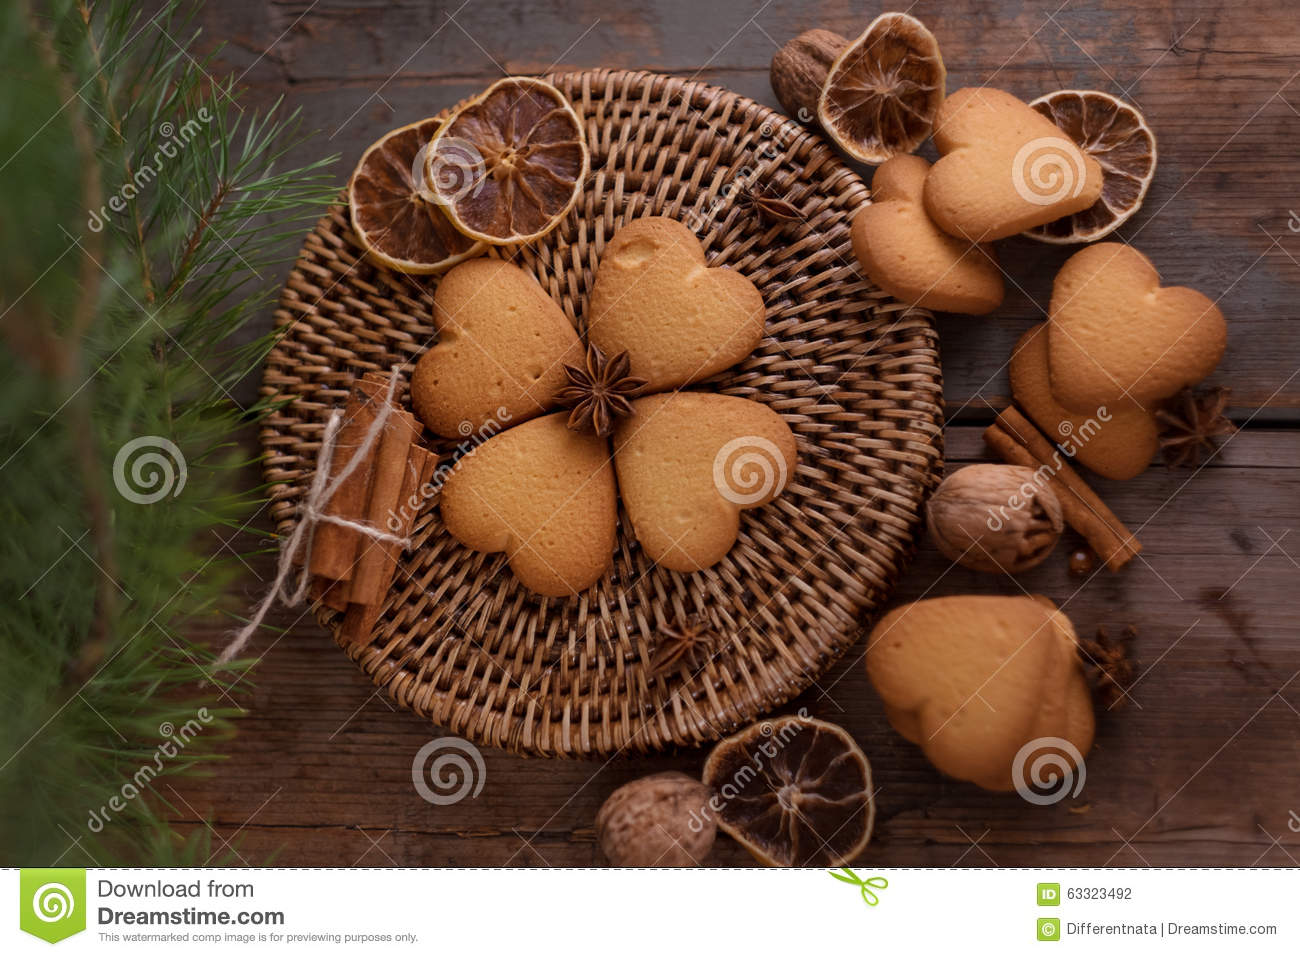 Shortbread Biscuit With Cinnamon And Star Anise Spices Stock Photo ...